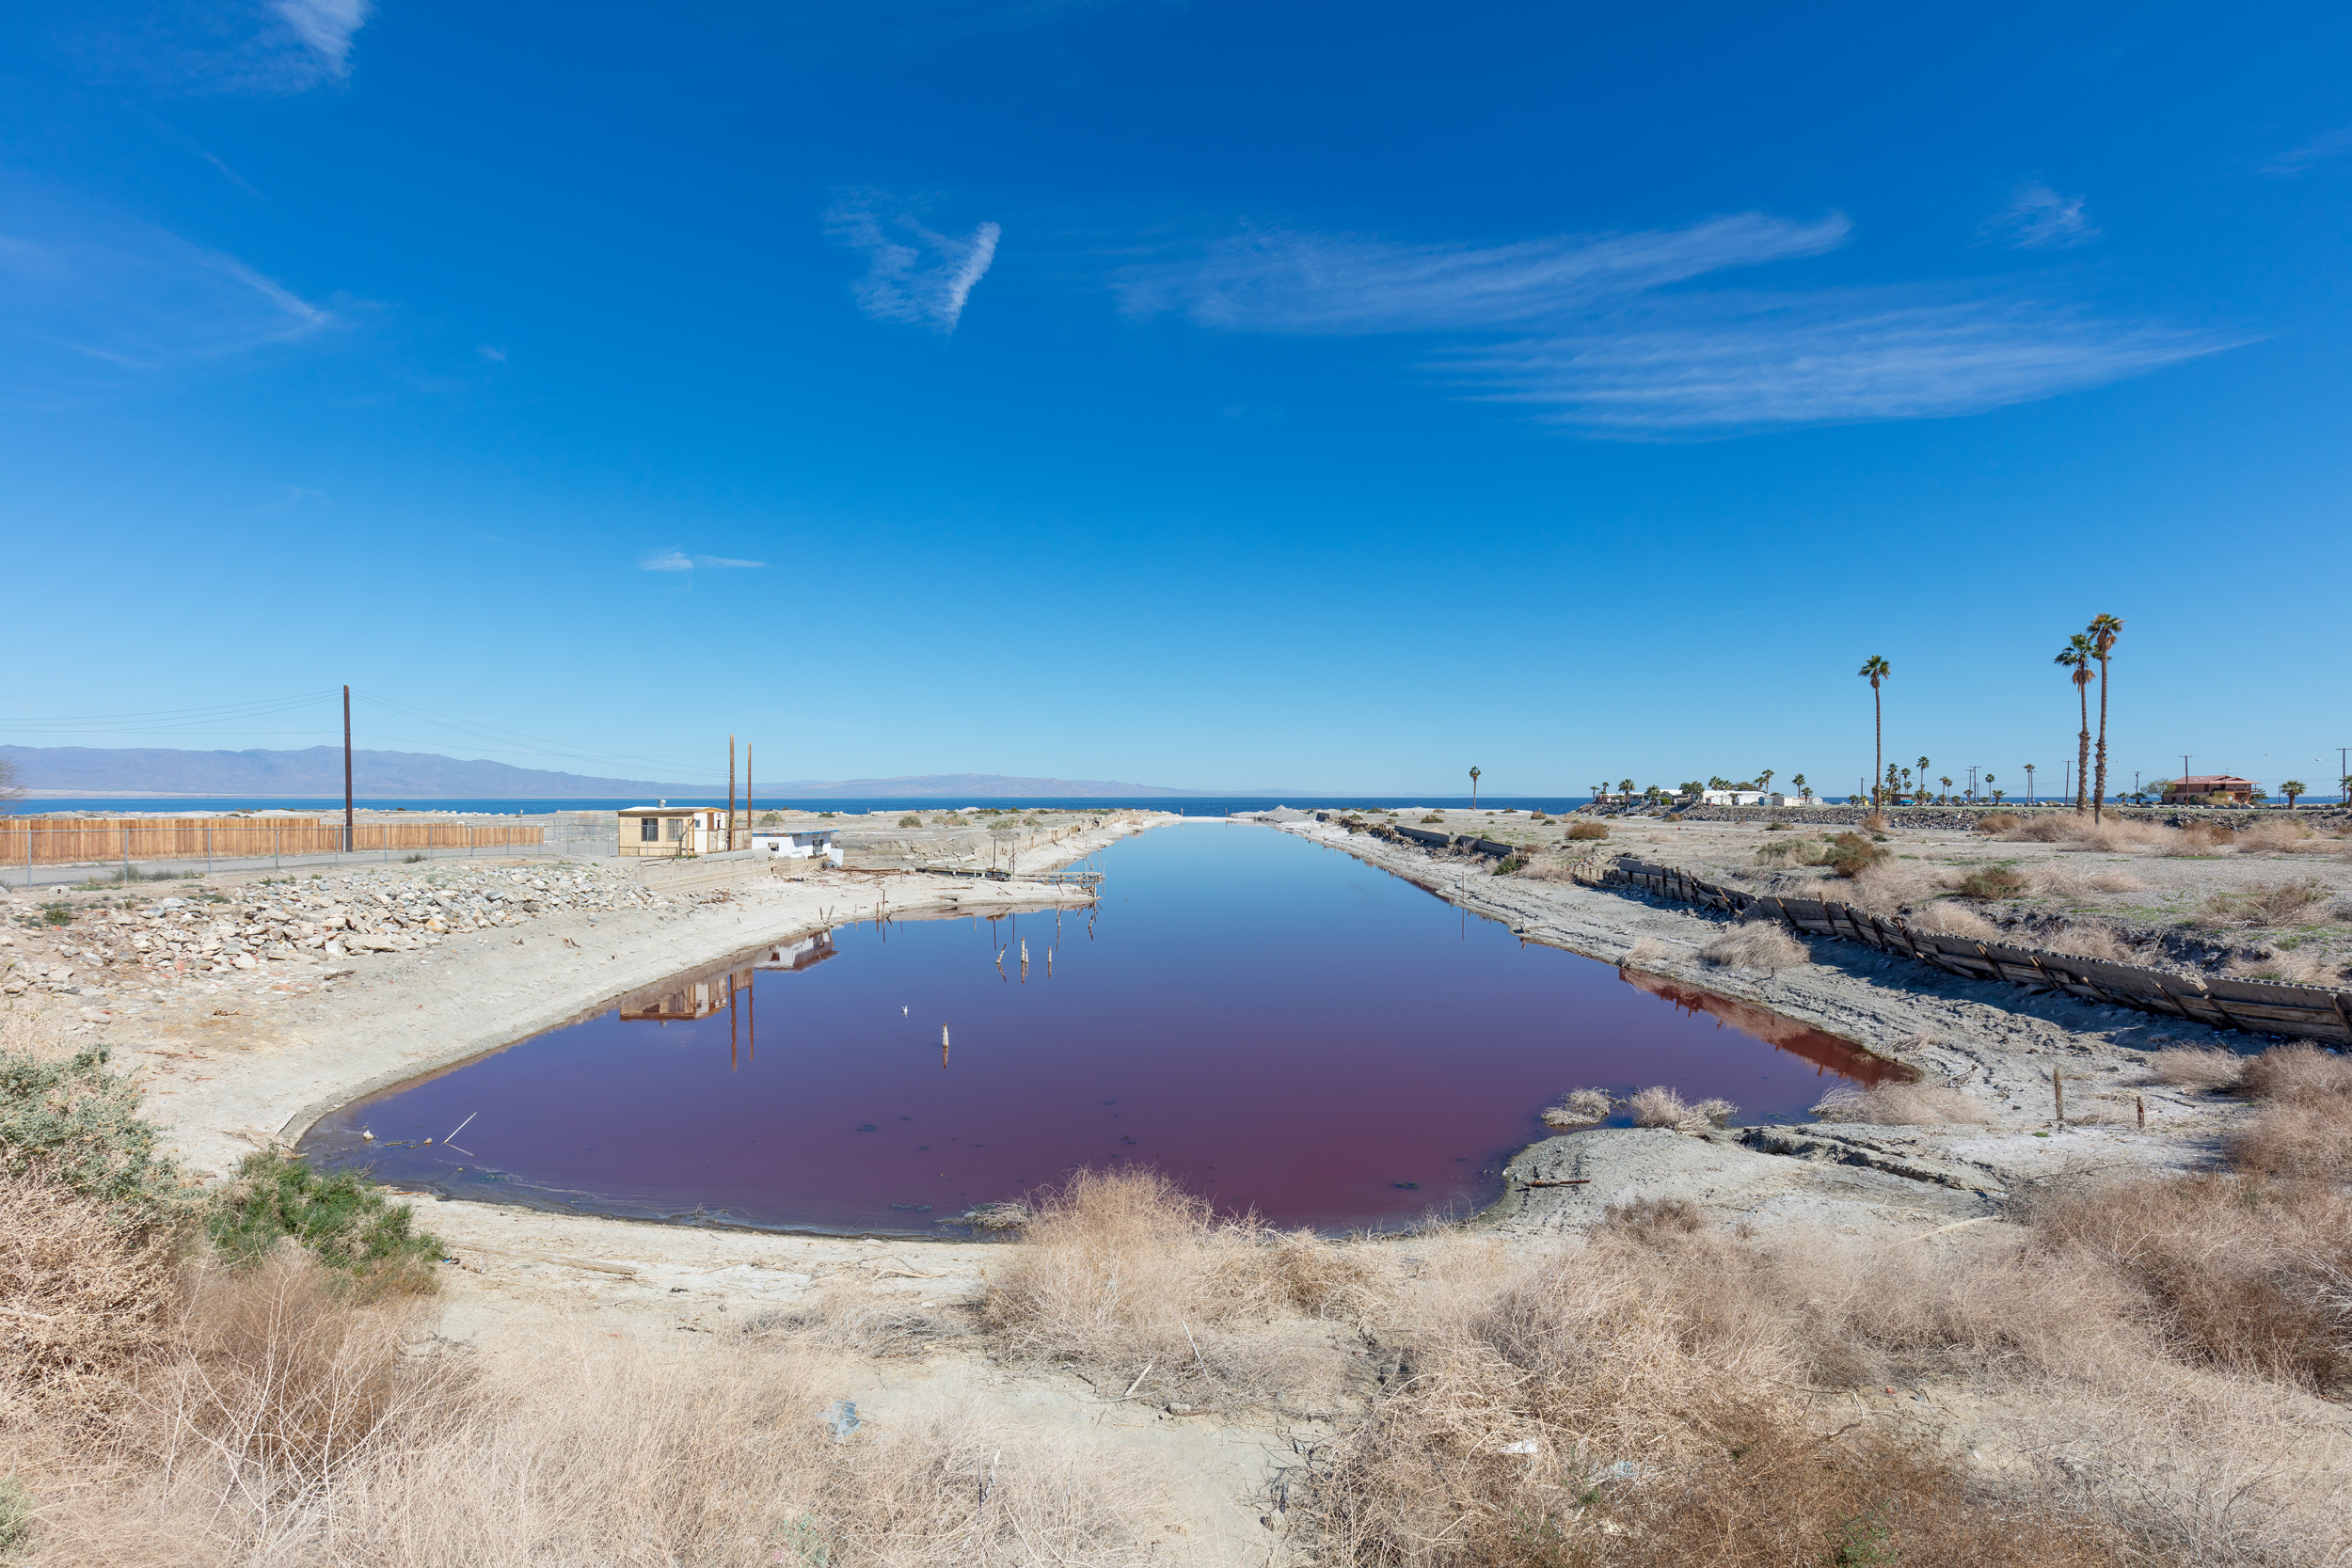 William_Short_Photography_Salton_Sea_2017_036